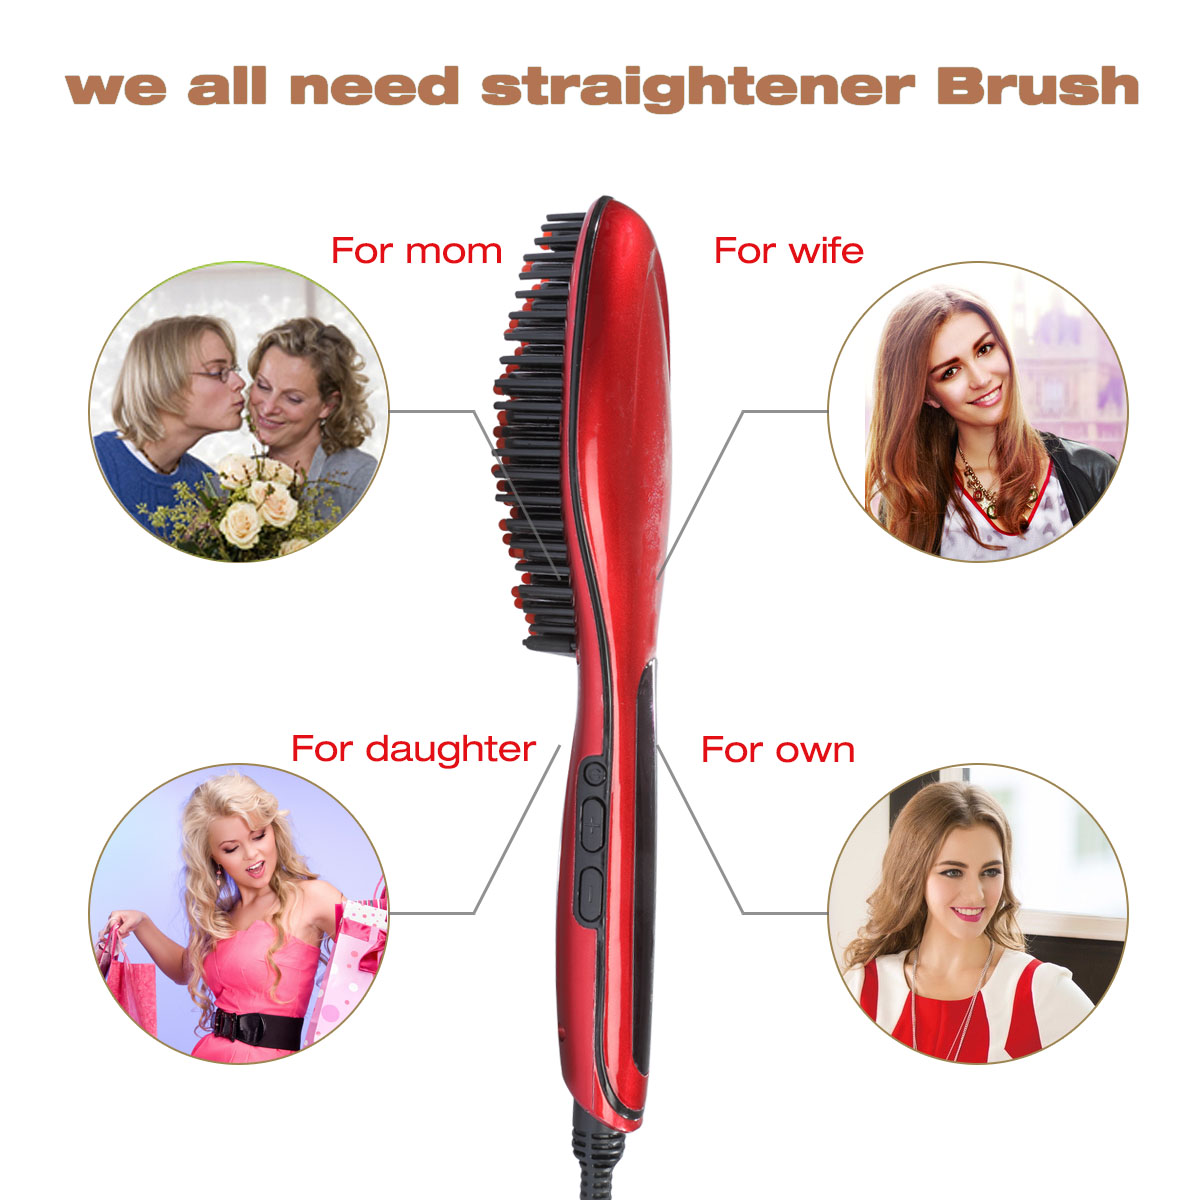 CoastaCloud Led Display Hair Straightening Brush Detangling Hair Brush For Faster Straightening,Instant Magic Silky Straight Hair Styling,Anti Scald,Zero Damage,Anti Scald with US